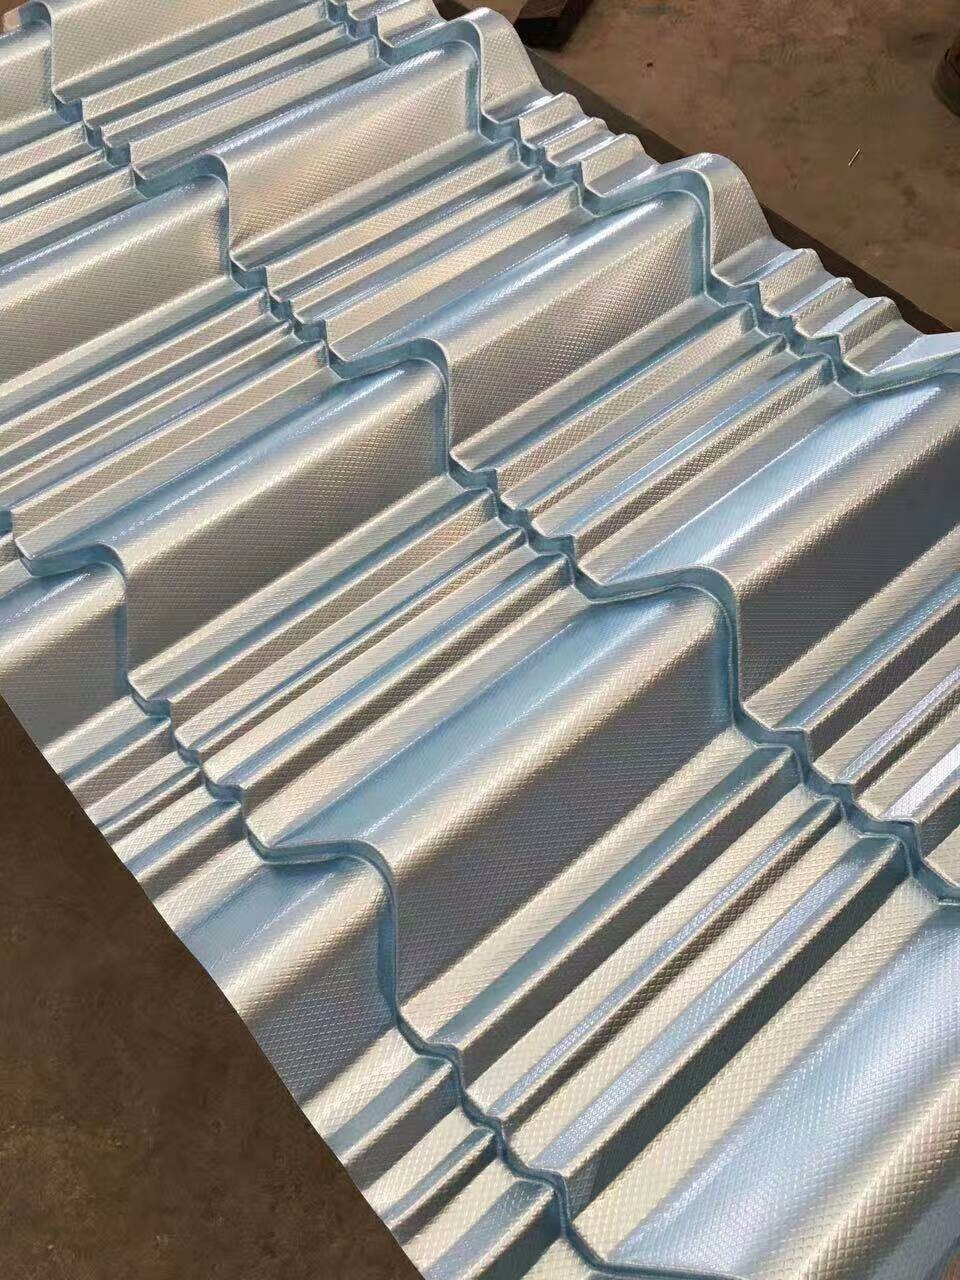 Metal Roof Thermal Insulation Cladding Material Steel Al